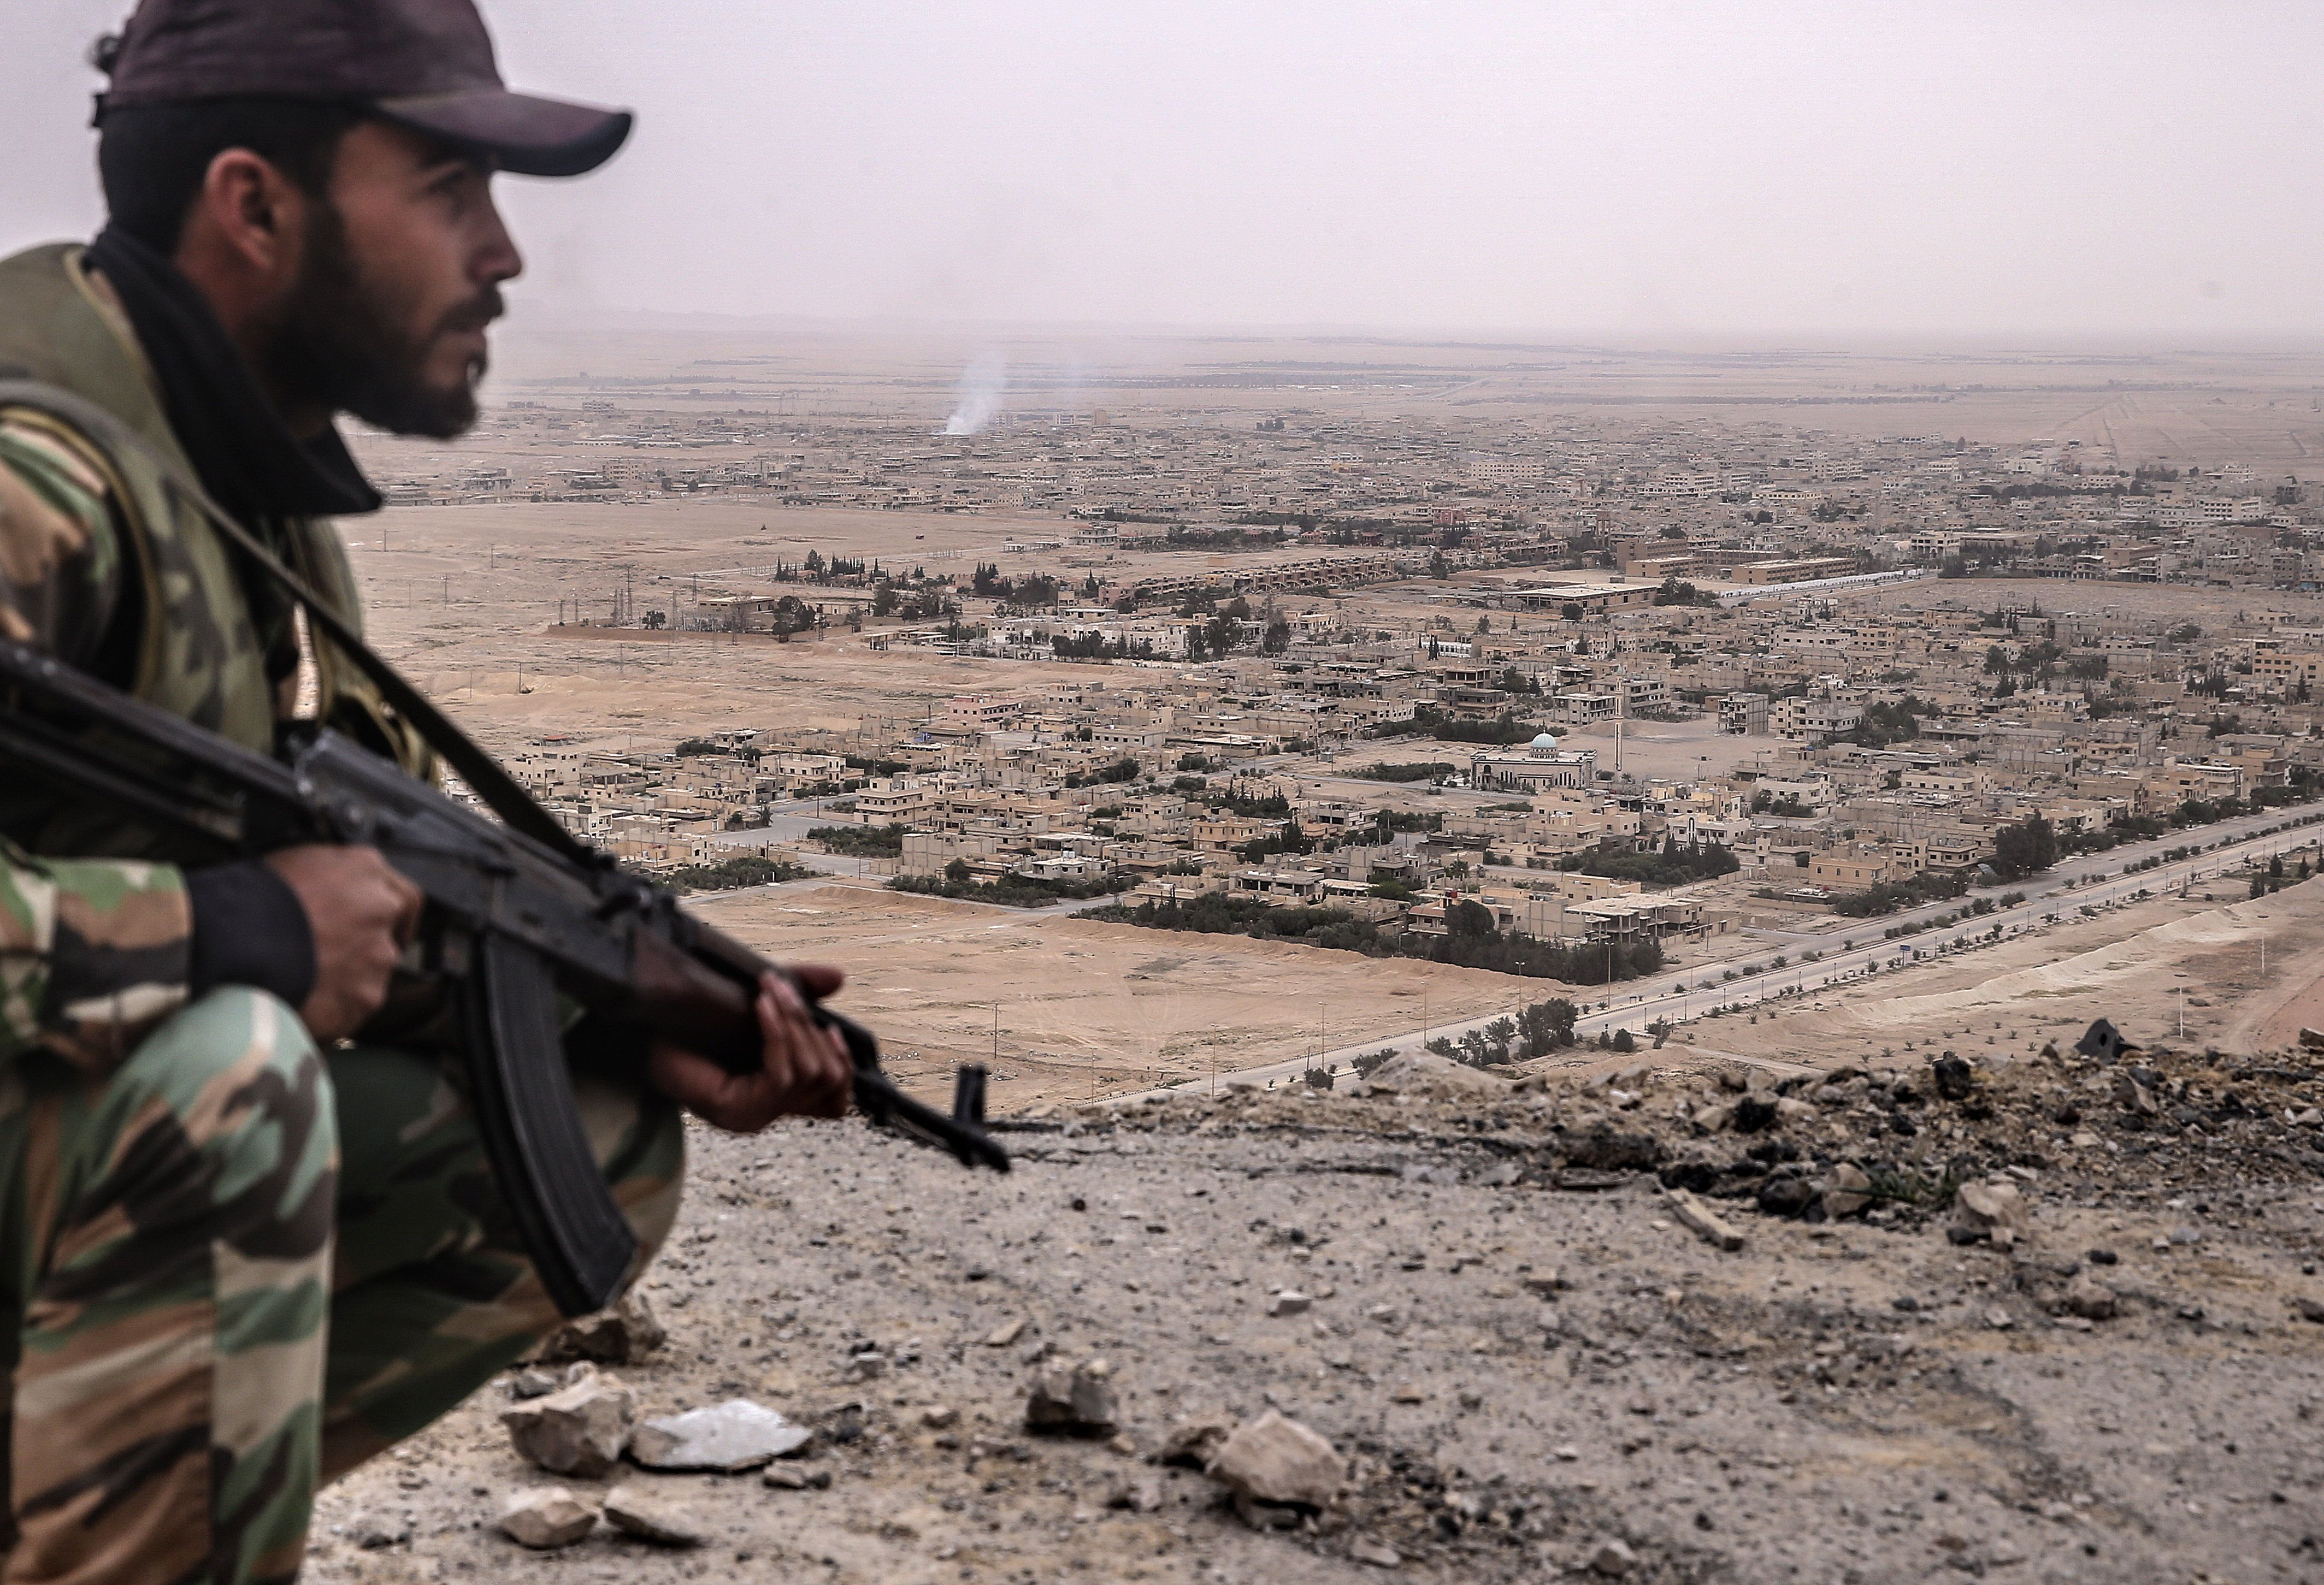 PALMYRIA, SYRIA. MARCH 26, 2016. A Syrian government army soldier looks at Palmyra from Fakhr al-Din al-Maani Citadel, a UNESCO world heritage site. The Syrian Government's army is fighting with ISIS militants for control of the heritage site. Valery Sharifulin/TASS (Photo by Valery Sharifulin\TASS via Getty Images)